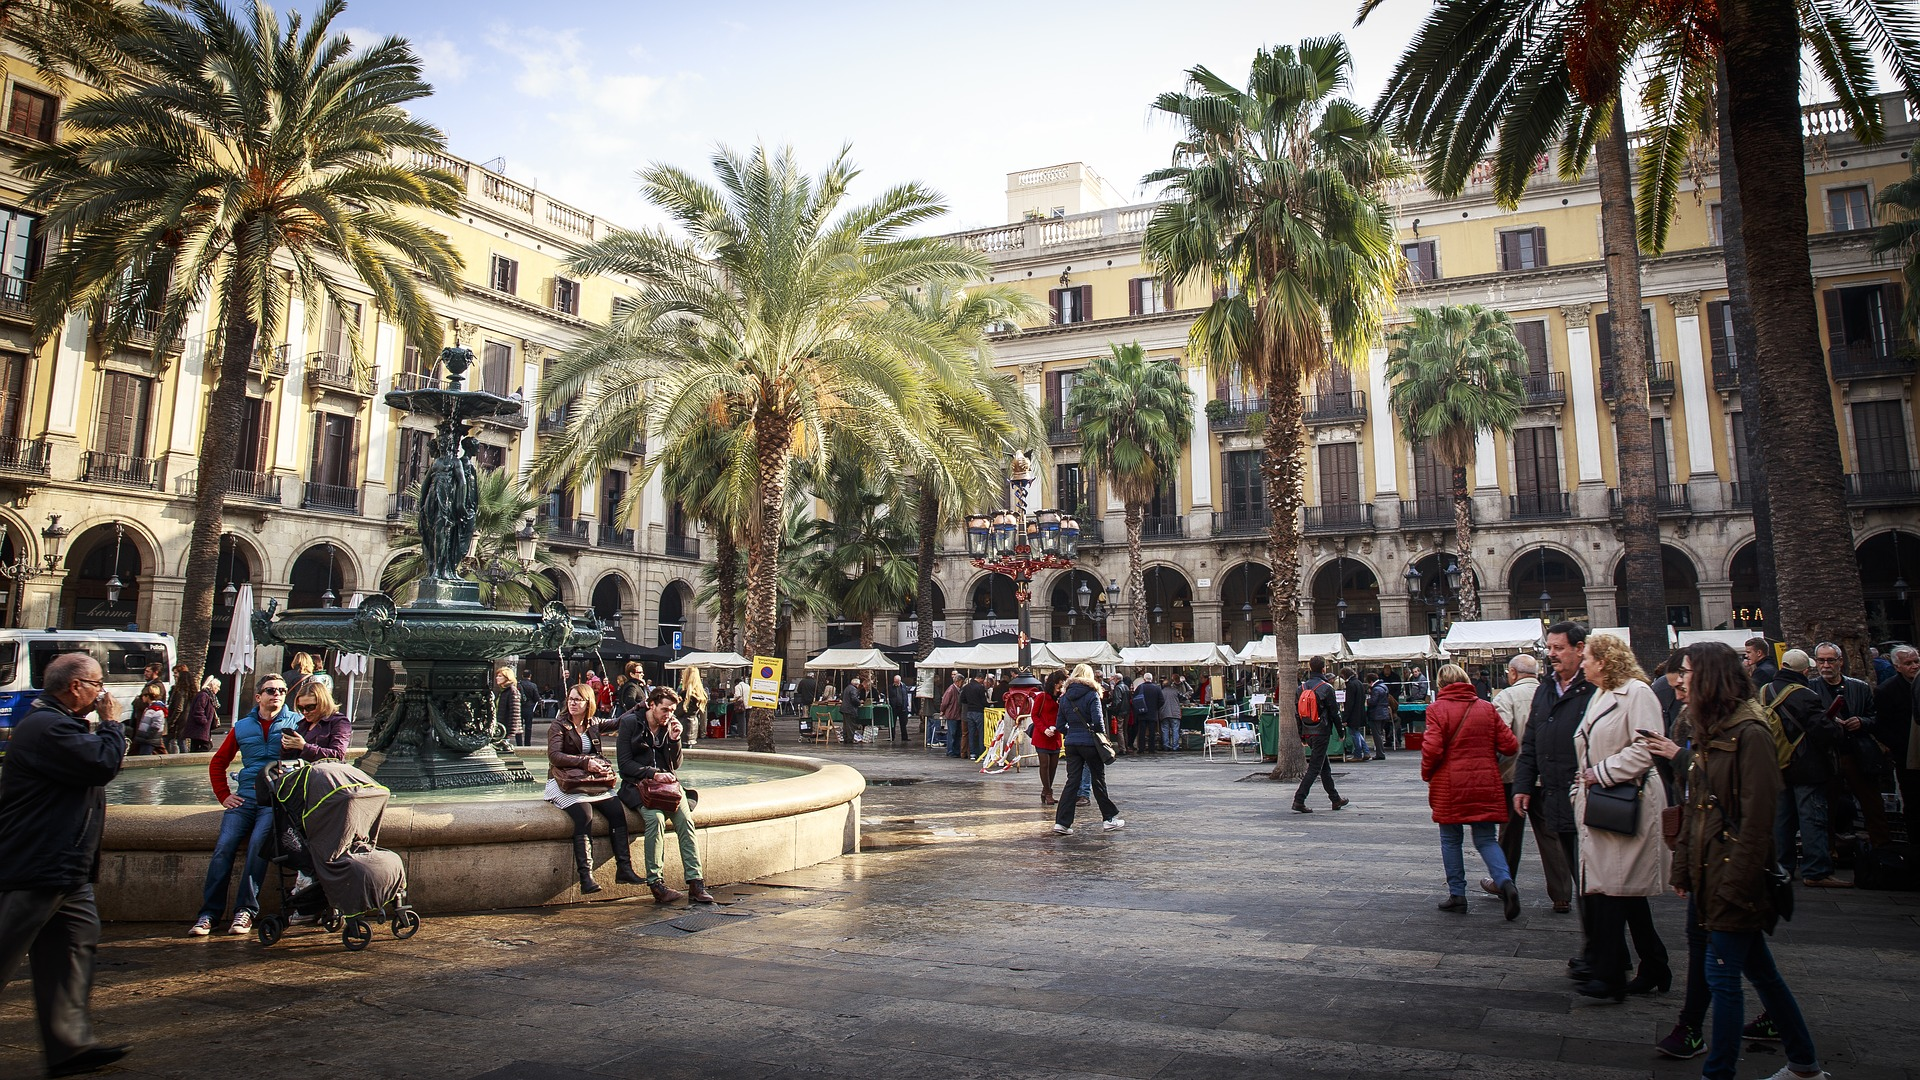 People in a square in Barcelona. Photo by skaramelka on Pixabay